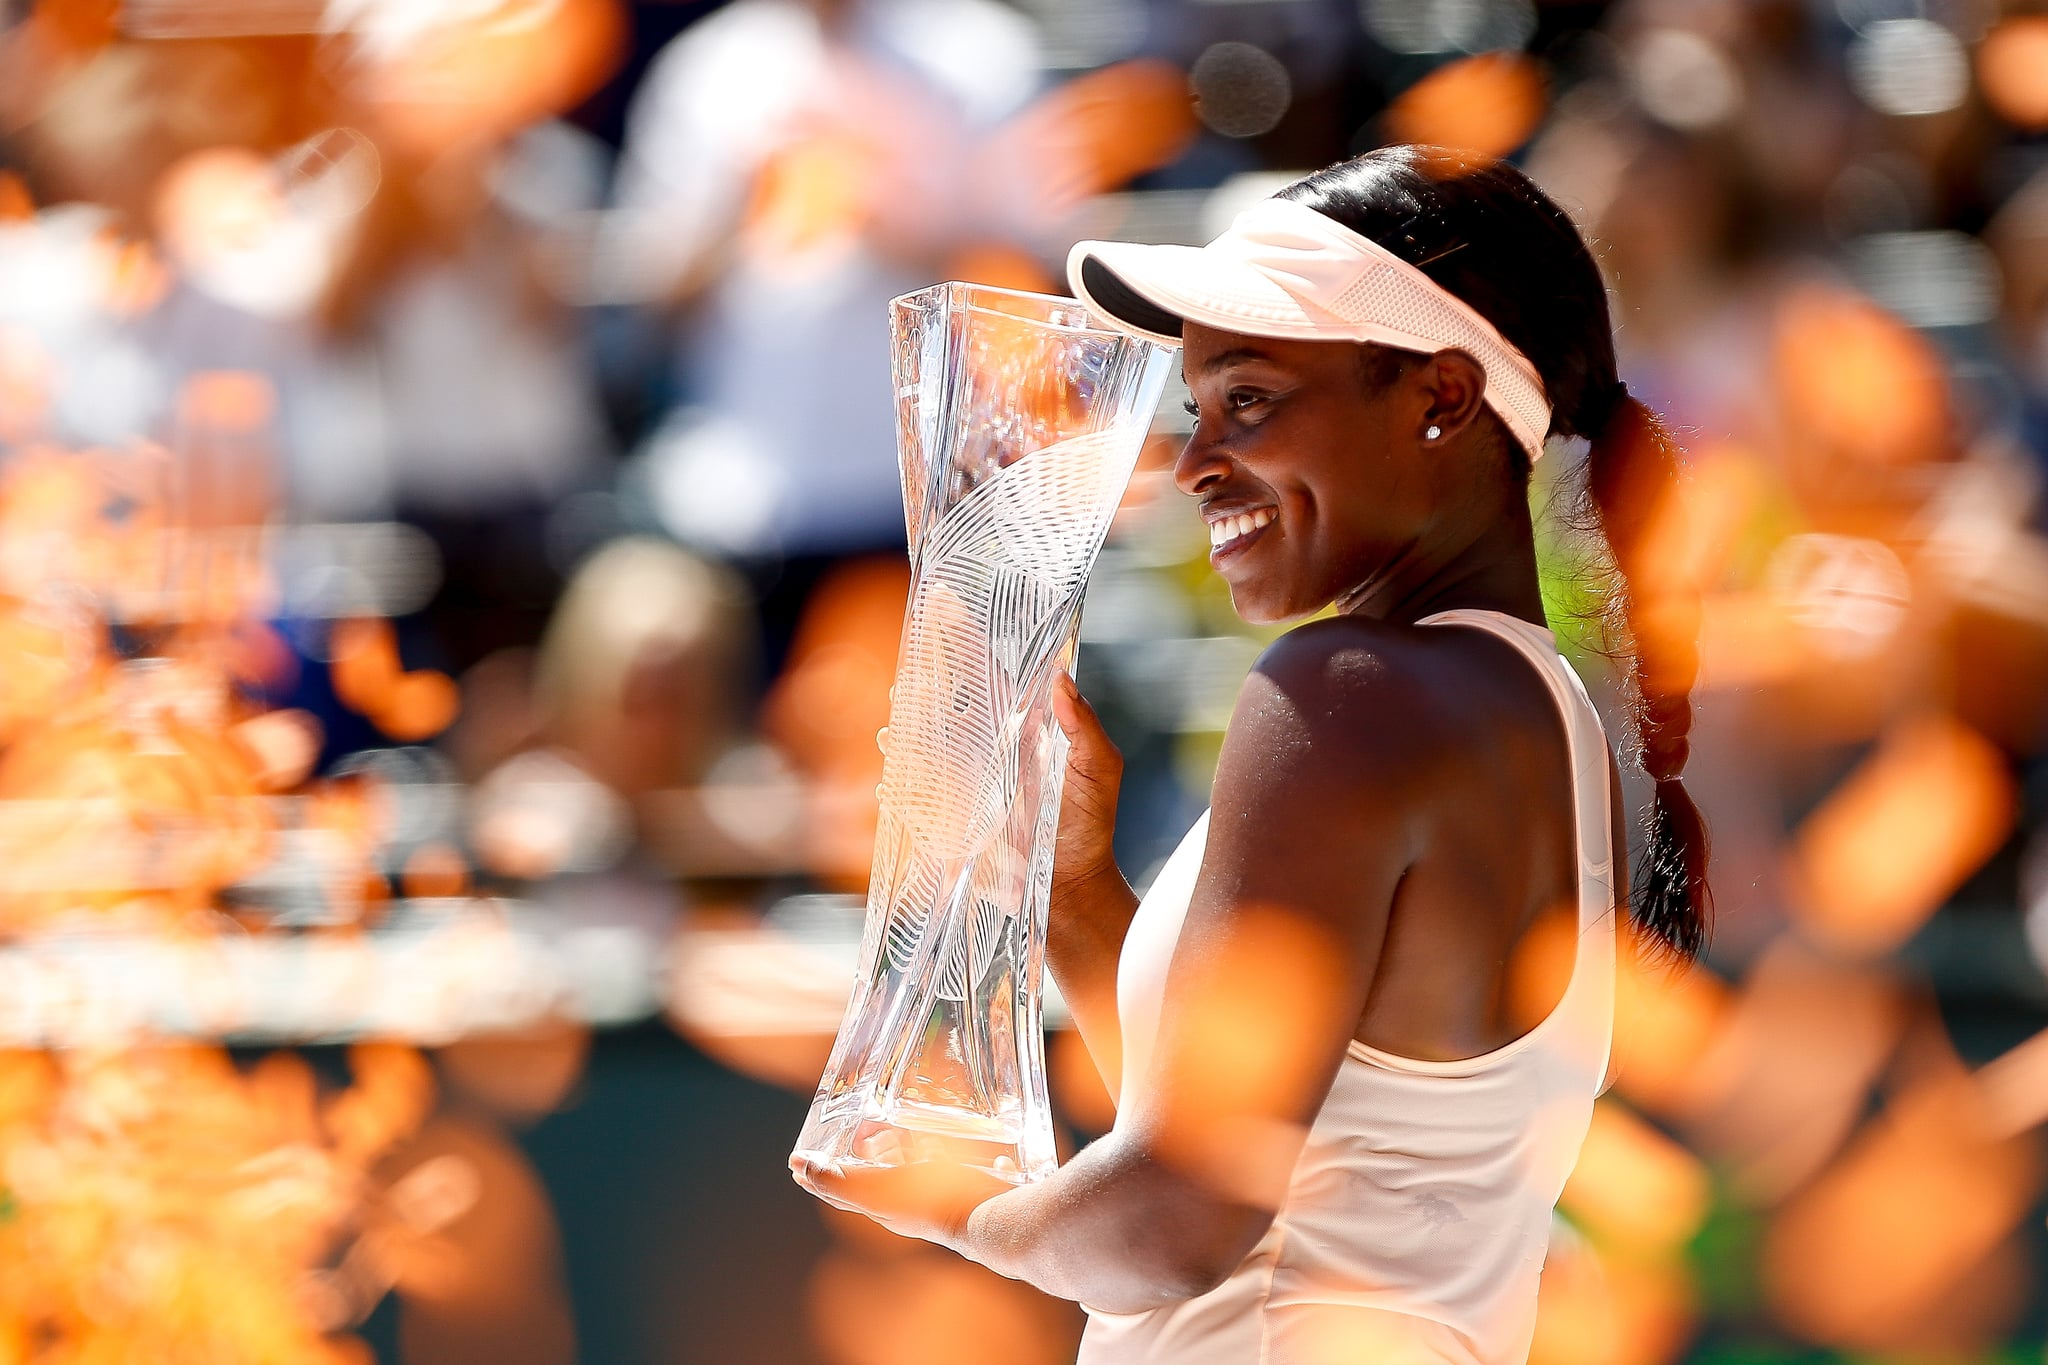 KEY BISCAYNE, FL - MARCH 31:  Sloane Stephens of the United States celebrates after defeating Jelena Ostapenko of Latvia in the women's final on Day 13 of the Miami Open Presented by Itau at Crandon Park Tennis Center on March 31, 2018 in Key Biscayne, Florida.  (Photo by Michael Reaves/Getty Images)